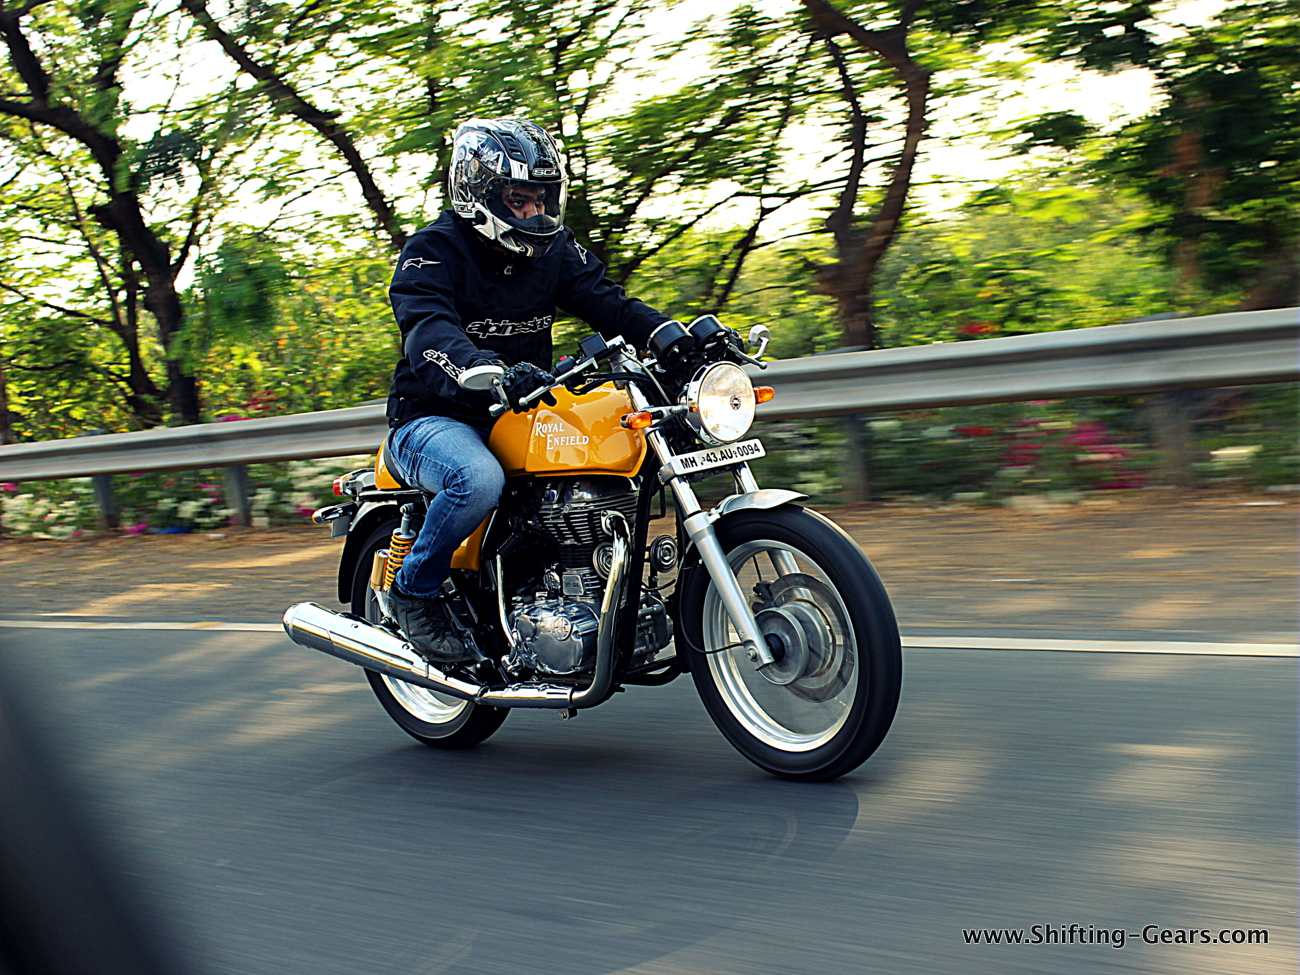 royal-enfield-continental-gt-535-cafe-racer-03